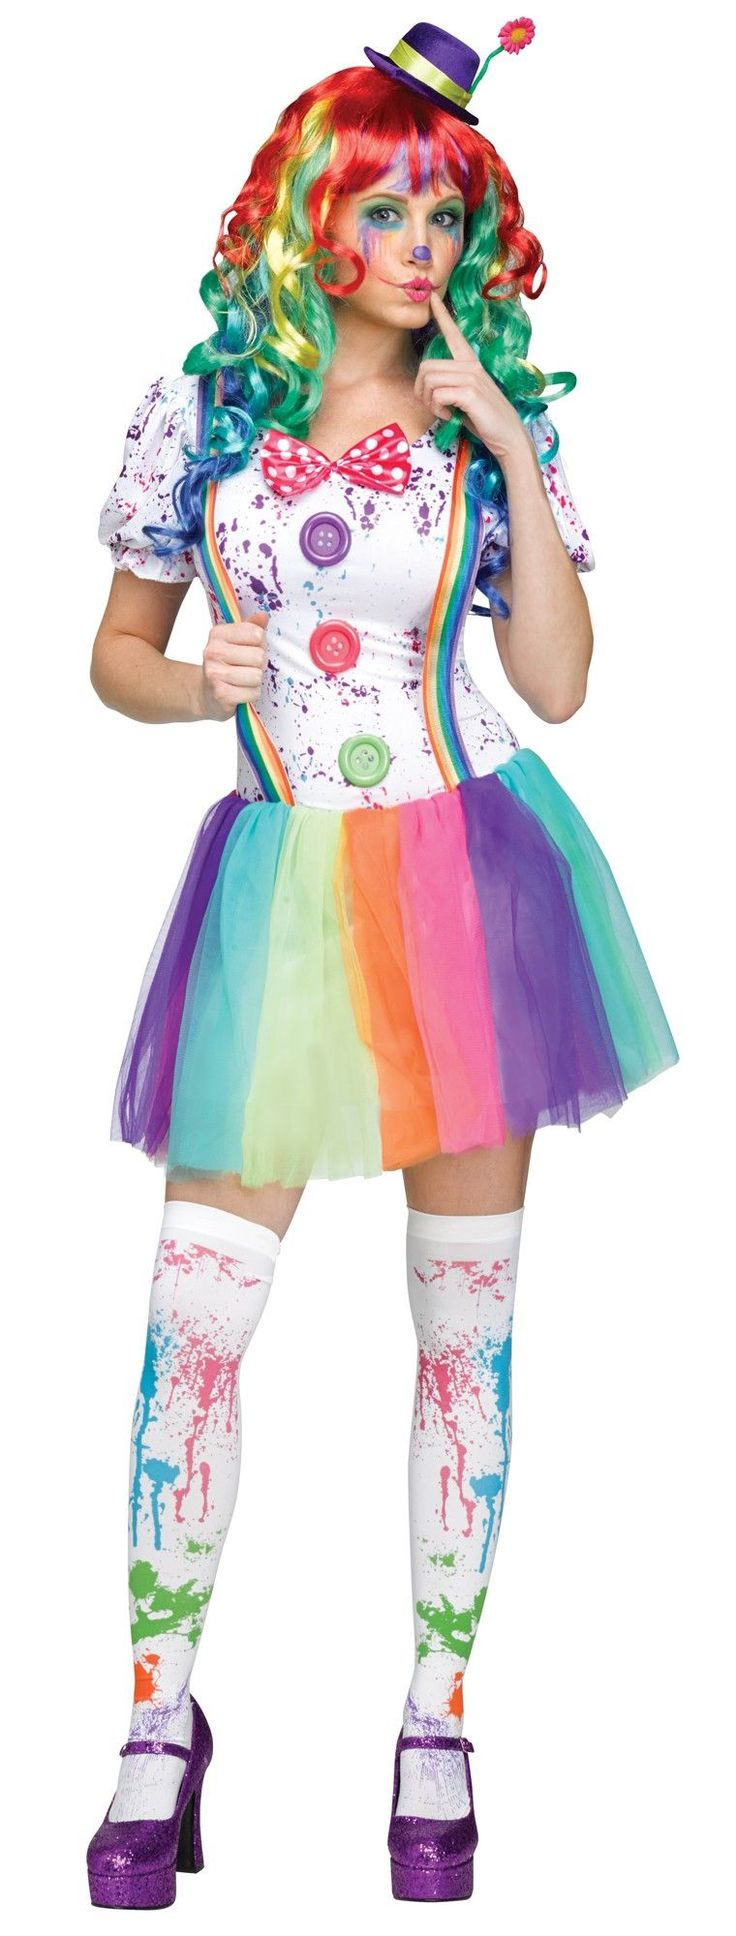 #Clown #Women #Costume for any occasion